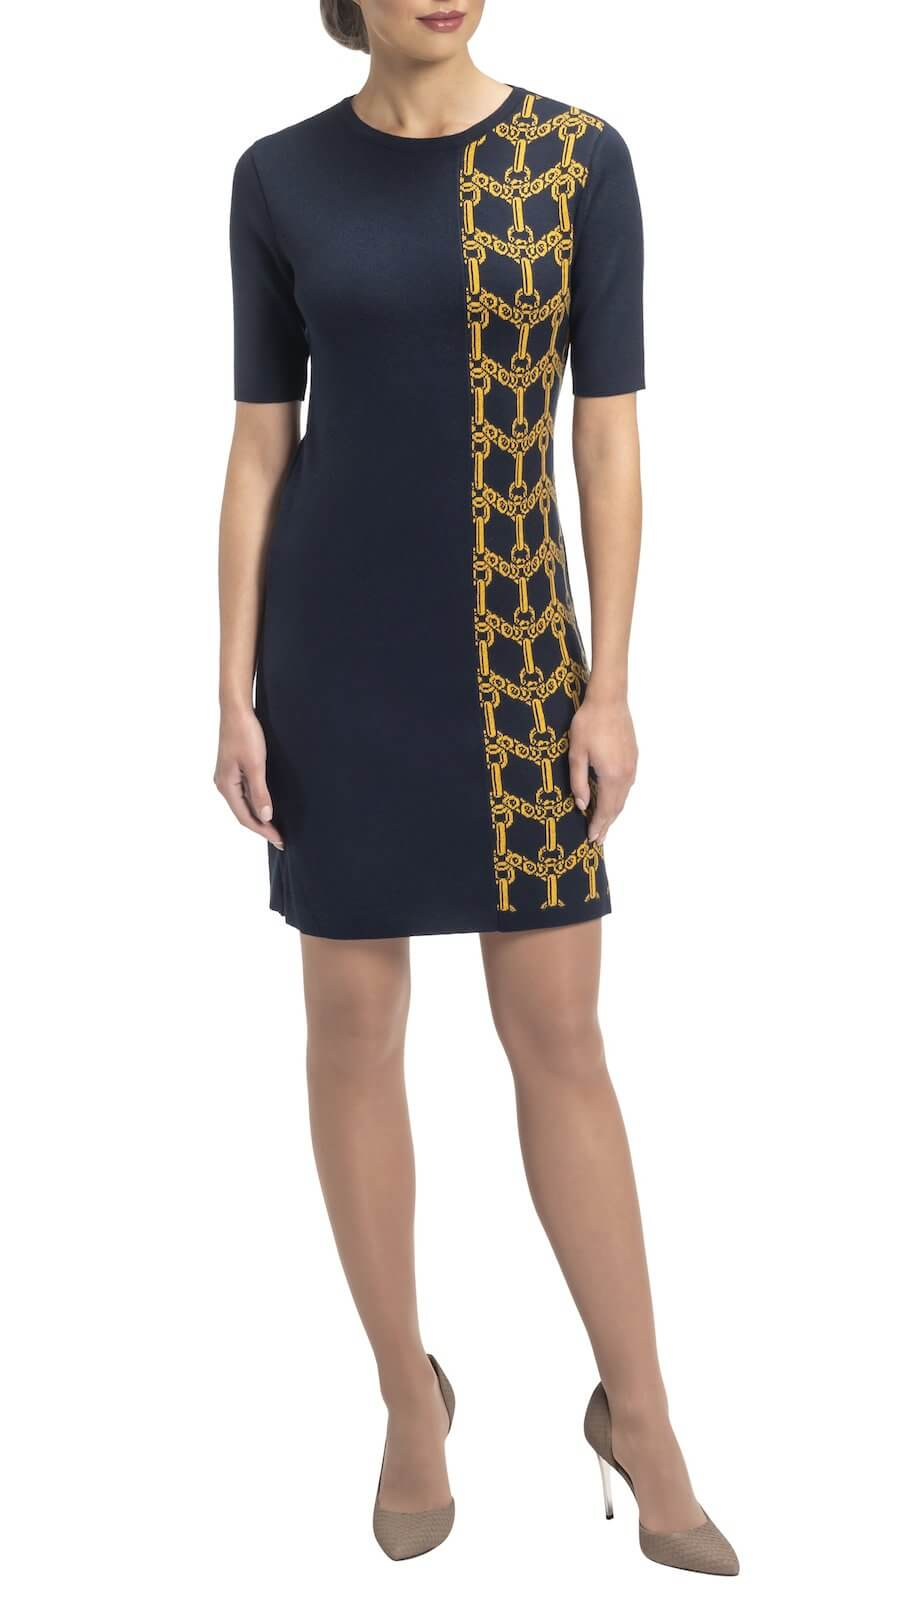 Jannie_Dress_822_Navy_Gold_front_cropped